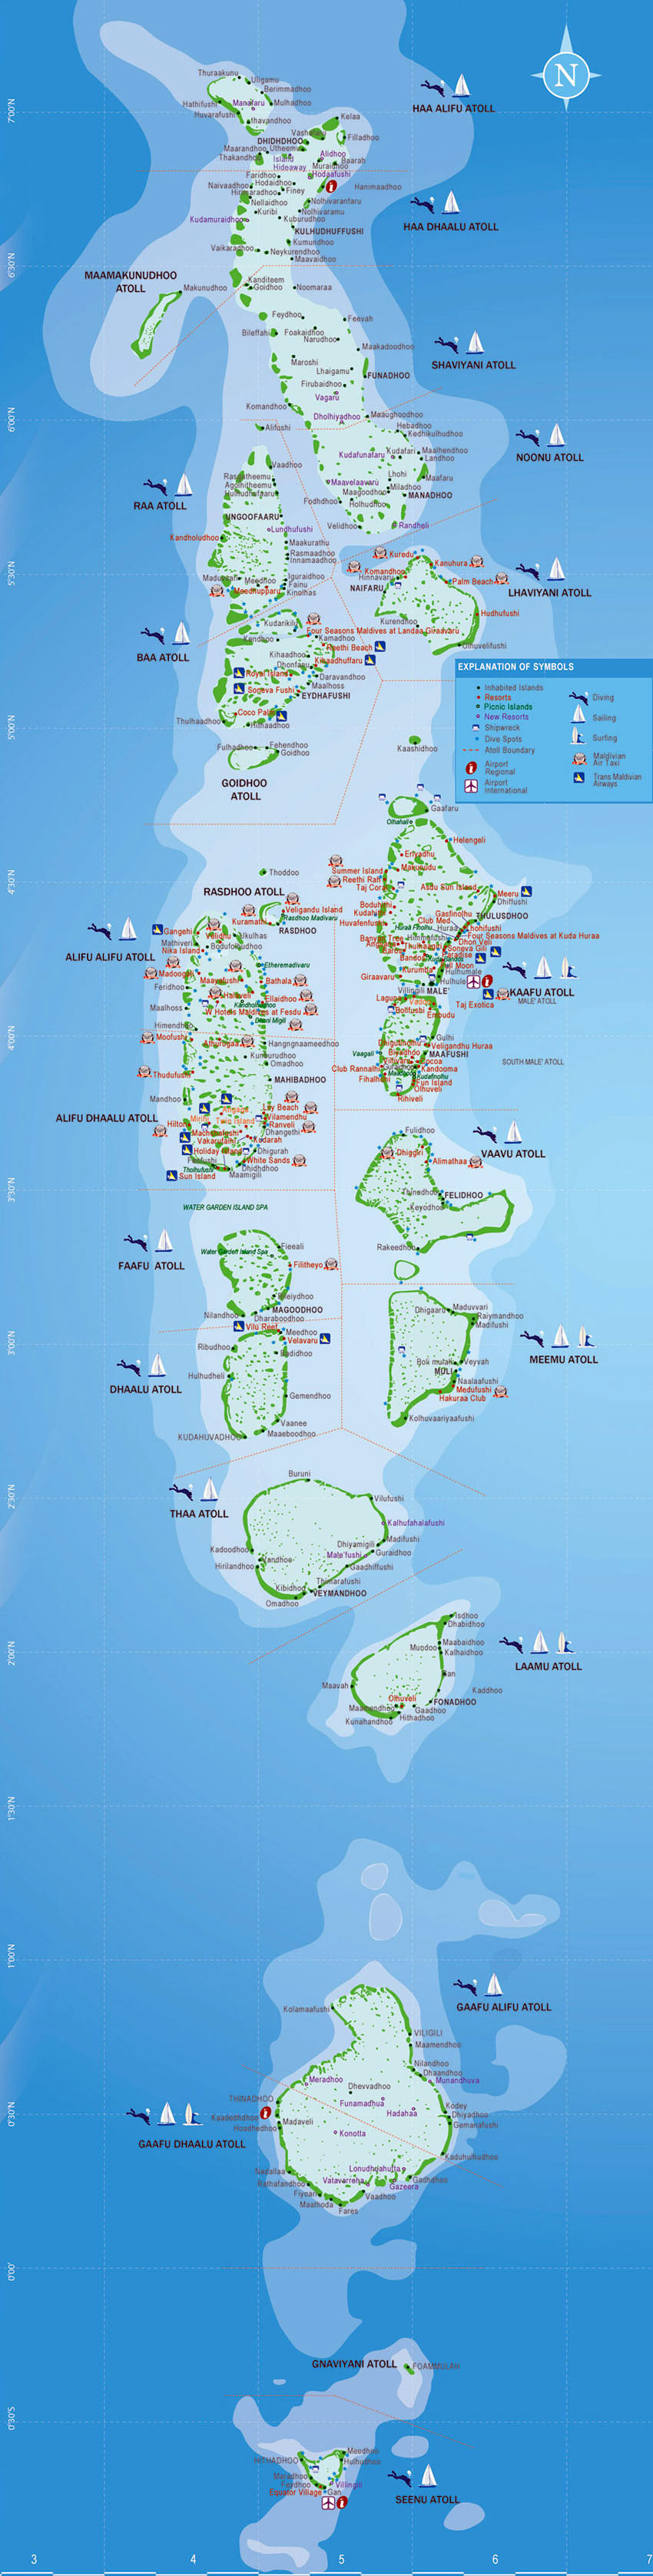 The maldives world map